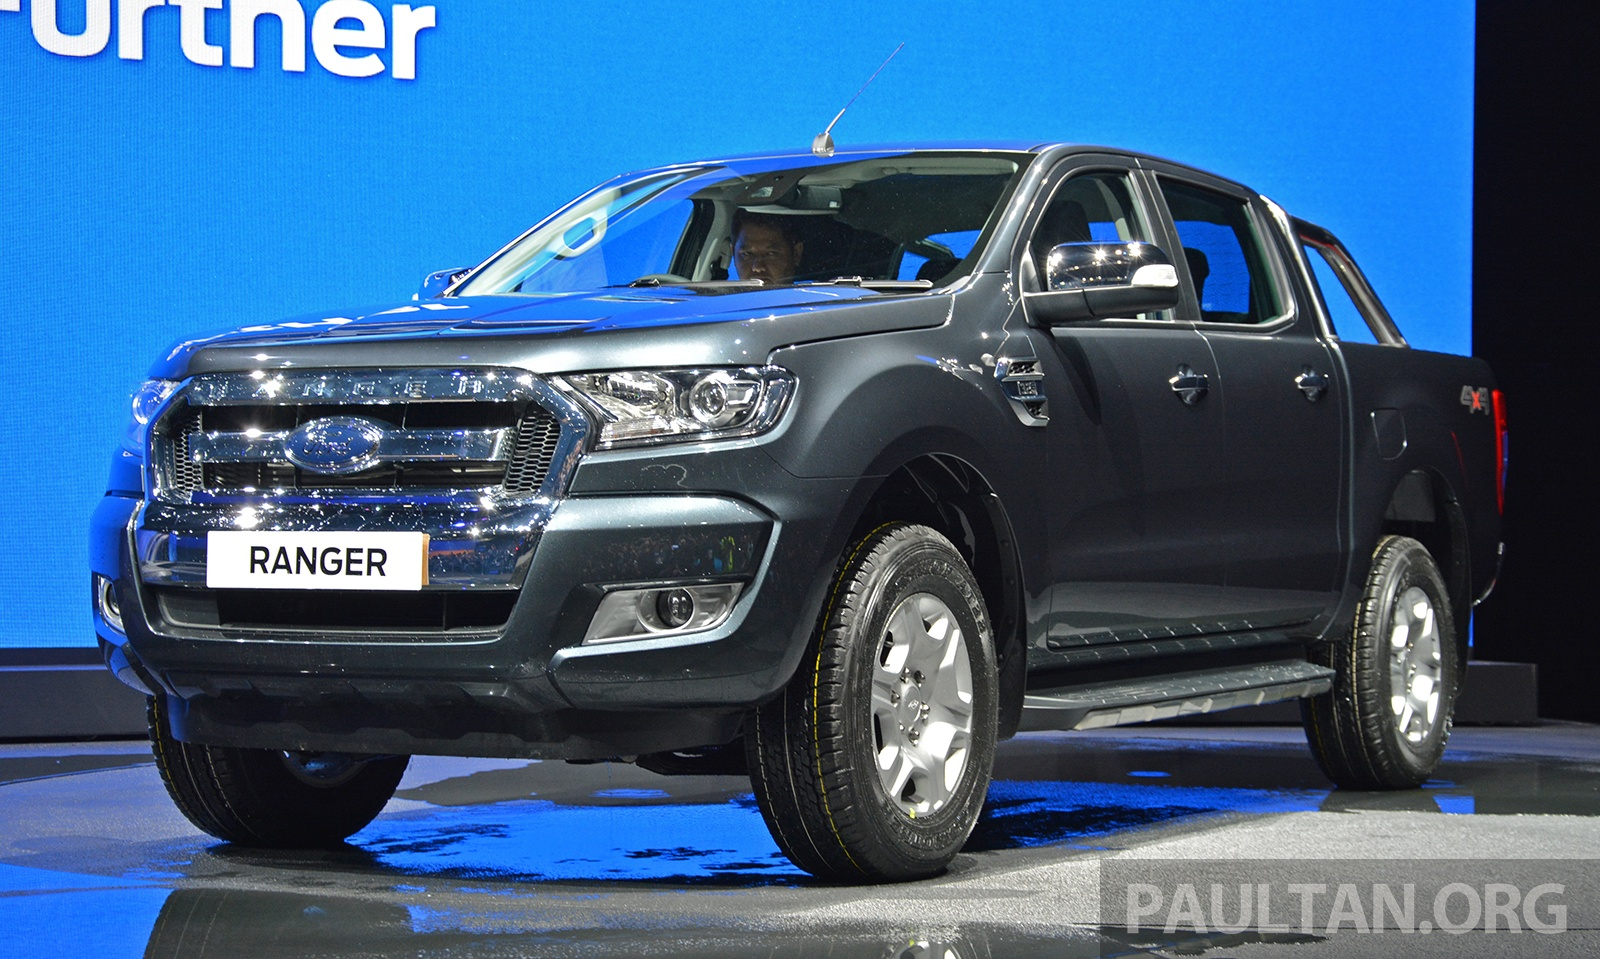 2015 Ford Ranger makes world debut in Thailand Image 320428